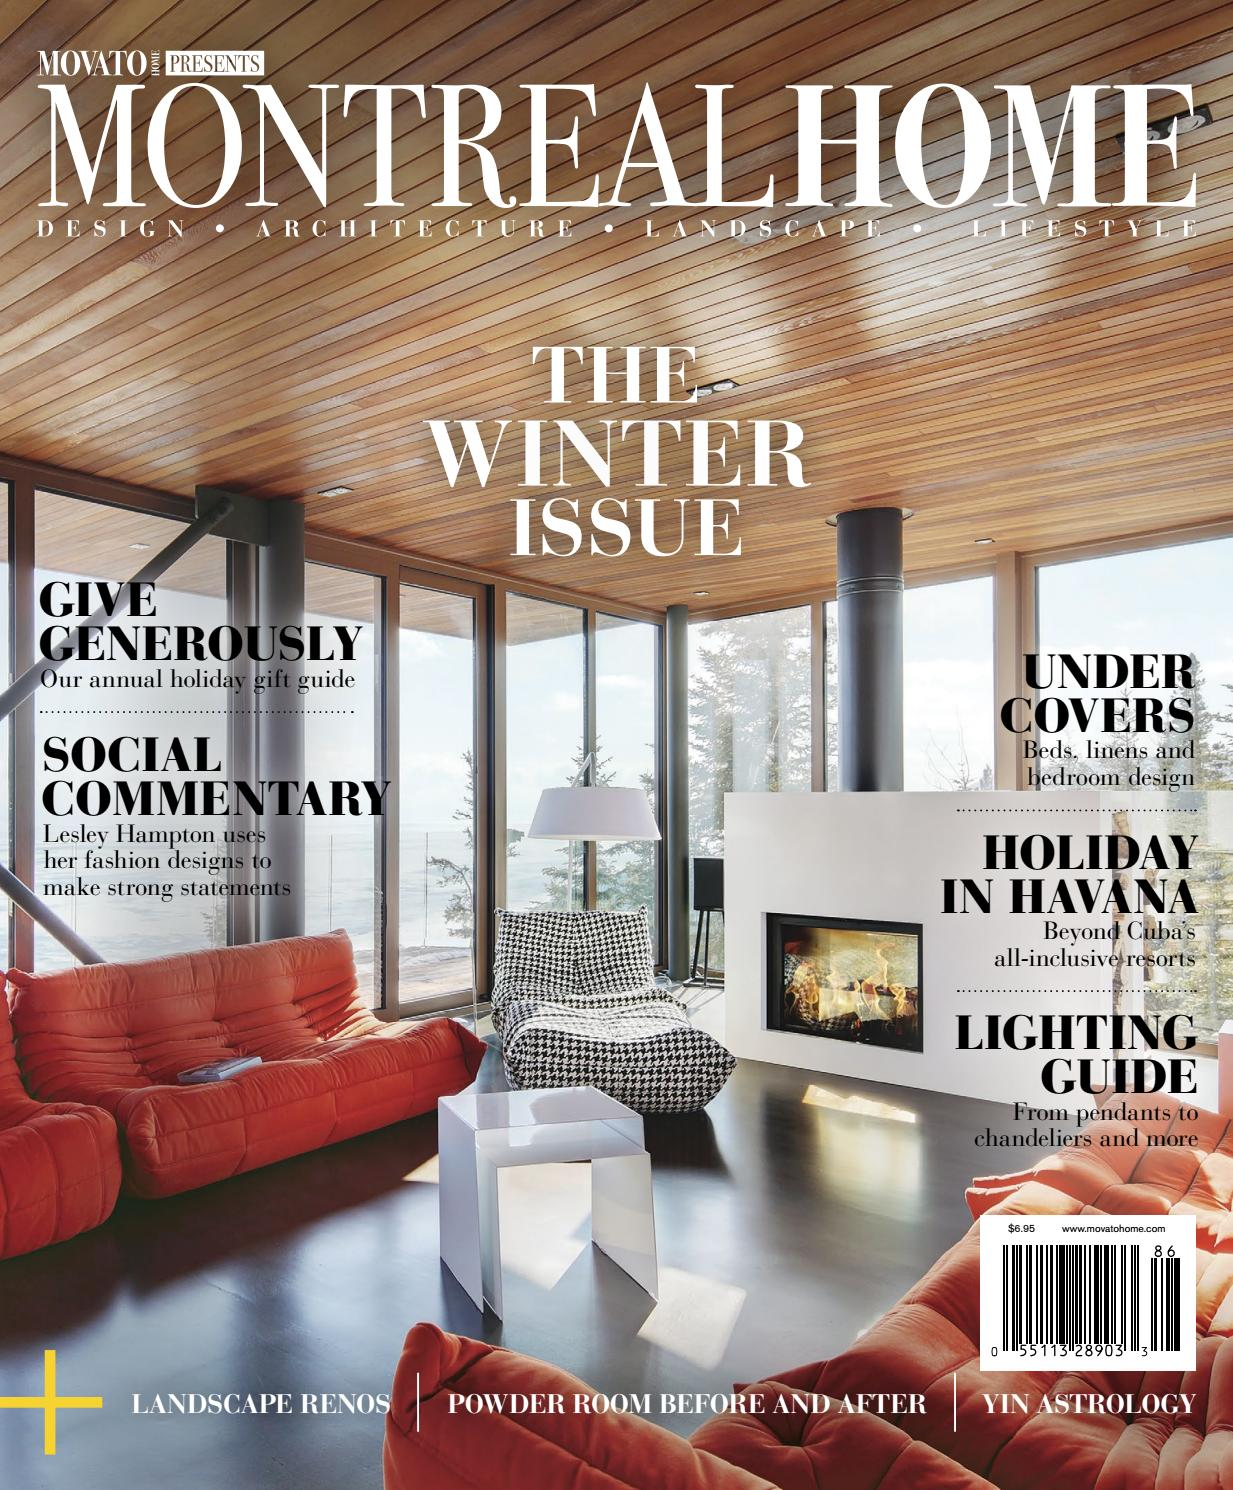 Montreal home winter 2018 19 by home in canada design ▫ architecture ▫ landscape ▫ lifestyle issuu